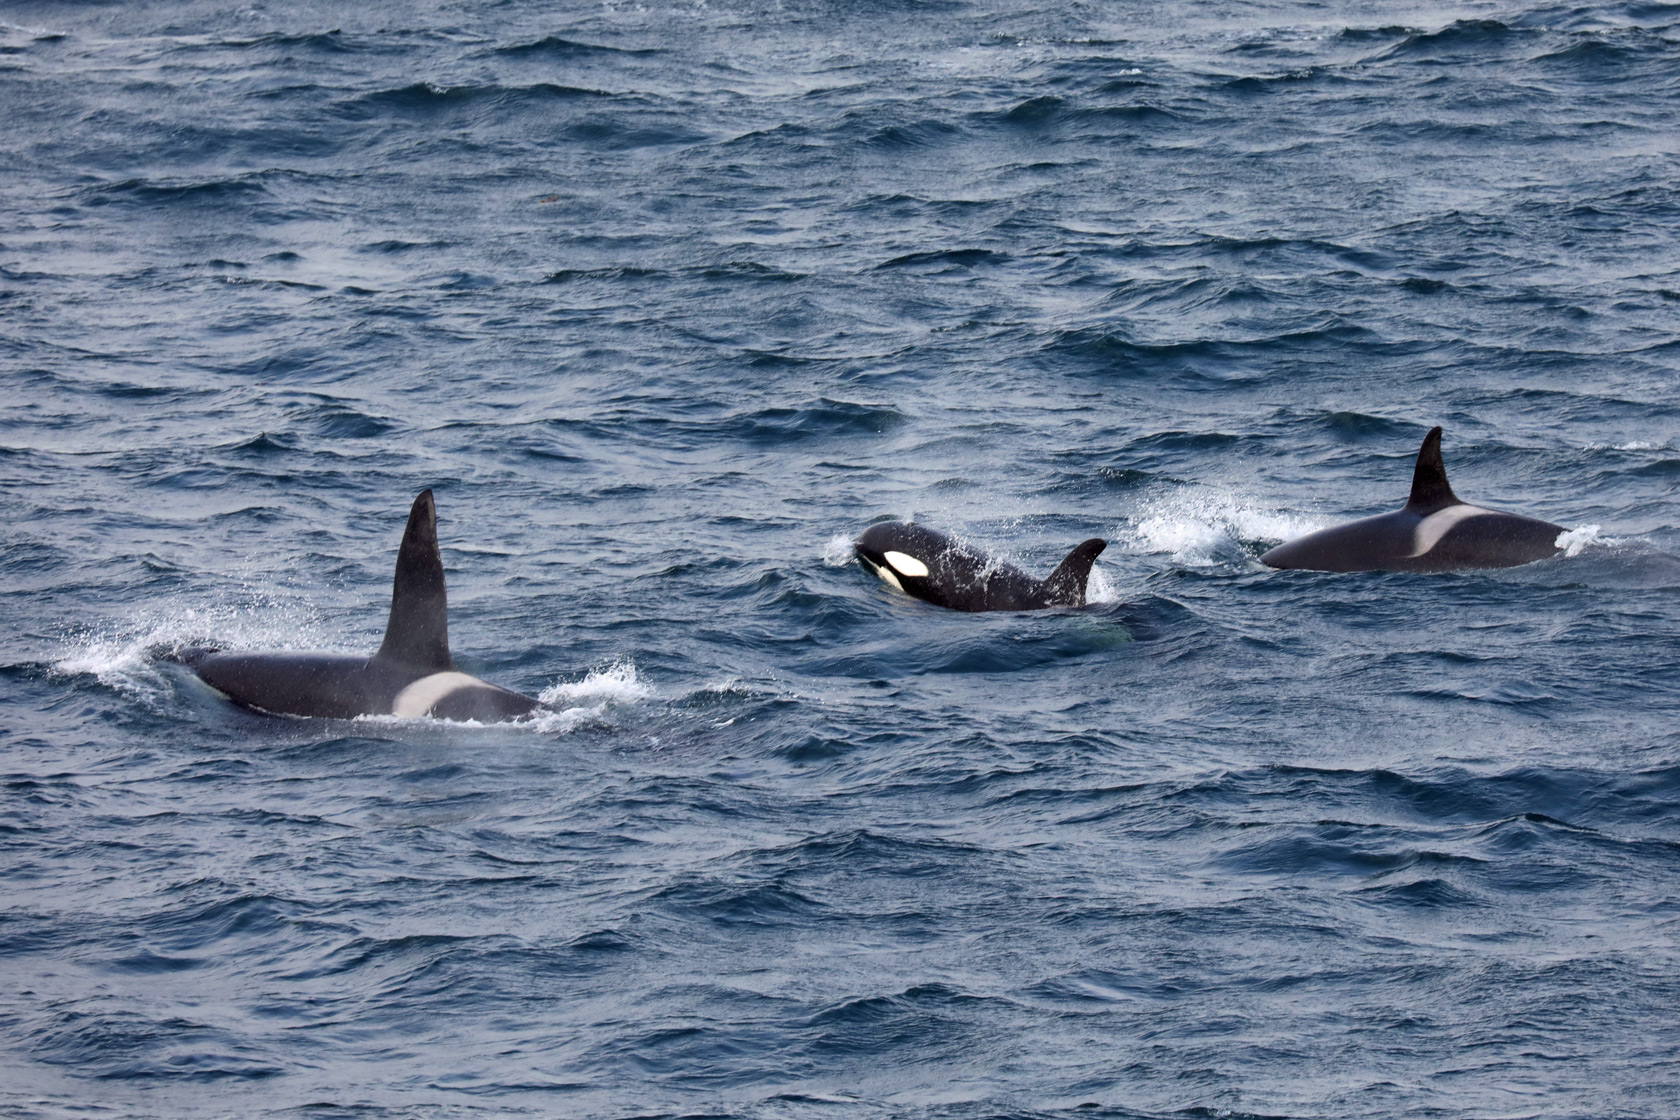 Orca pod welcoming committee in the Denmark Strait between Greenland and Iceland.